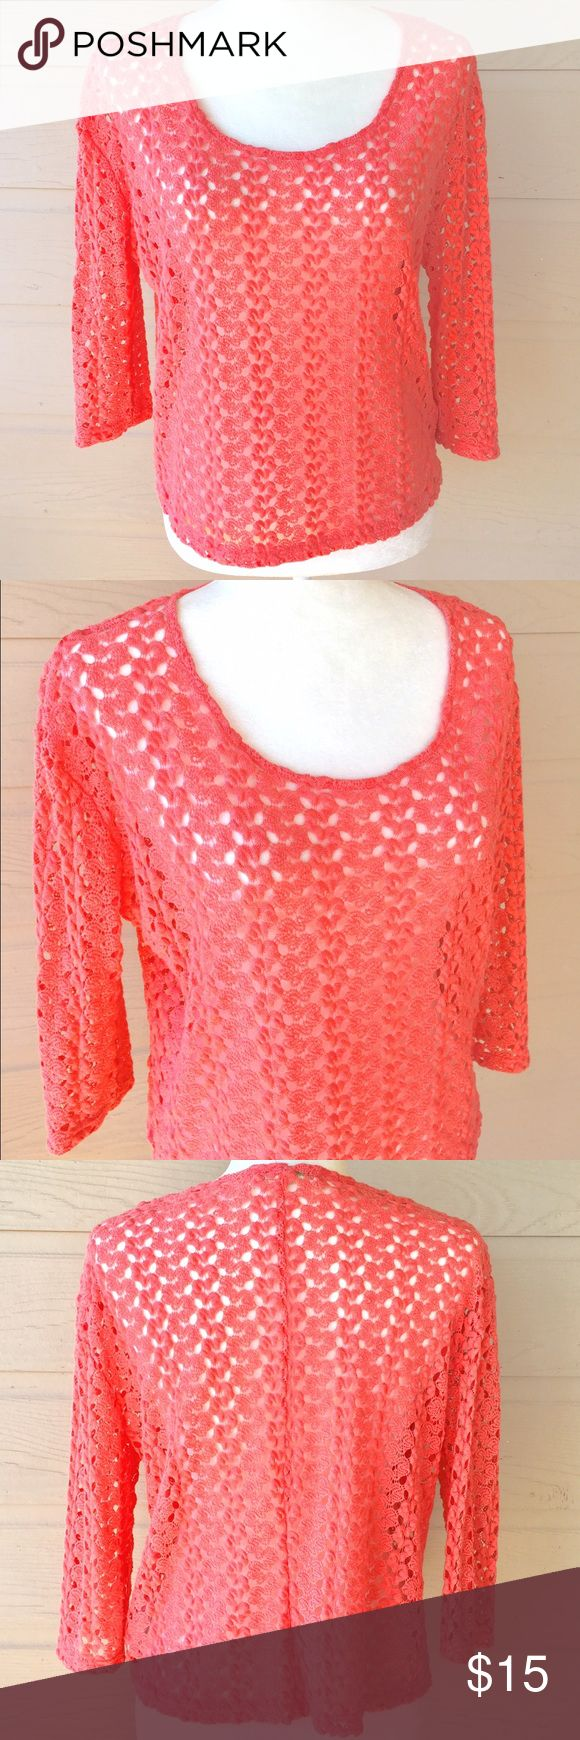 Staring at Stars Lace Coral Shirt Blouse Beautiful staring at stars and lace coral top bust 21 inches length 20 inches. If you have any questions please let me know thank you. Staring at Stars Tops Blouses